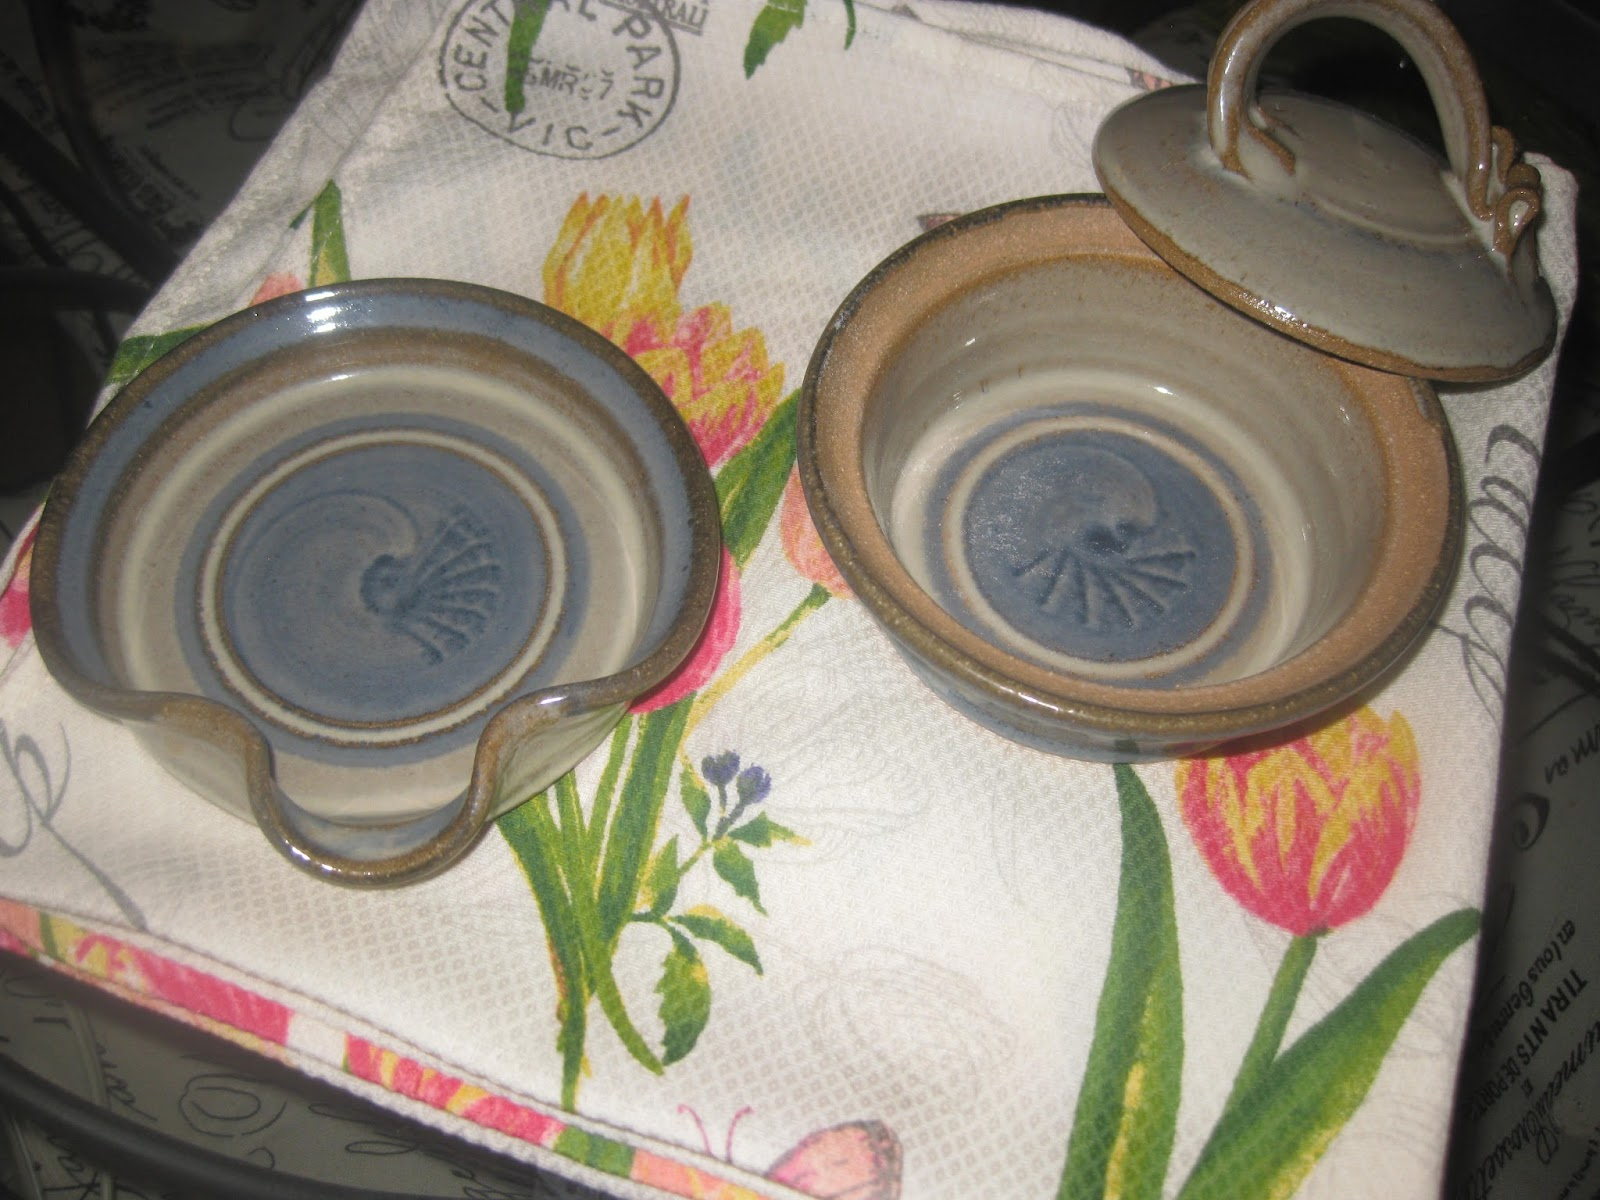 And this is \ REAL\  pottery. A gift from my friend who knows I have a thing about little \ crocks\ . This pottery is called Rolled Oats Pottery. & GOT A MINUTE OR TWO: HOME GOODS and REAL POTTERY